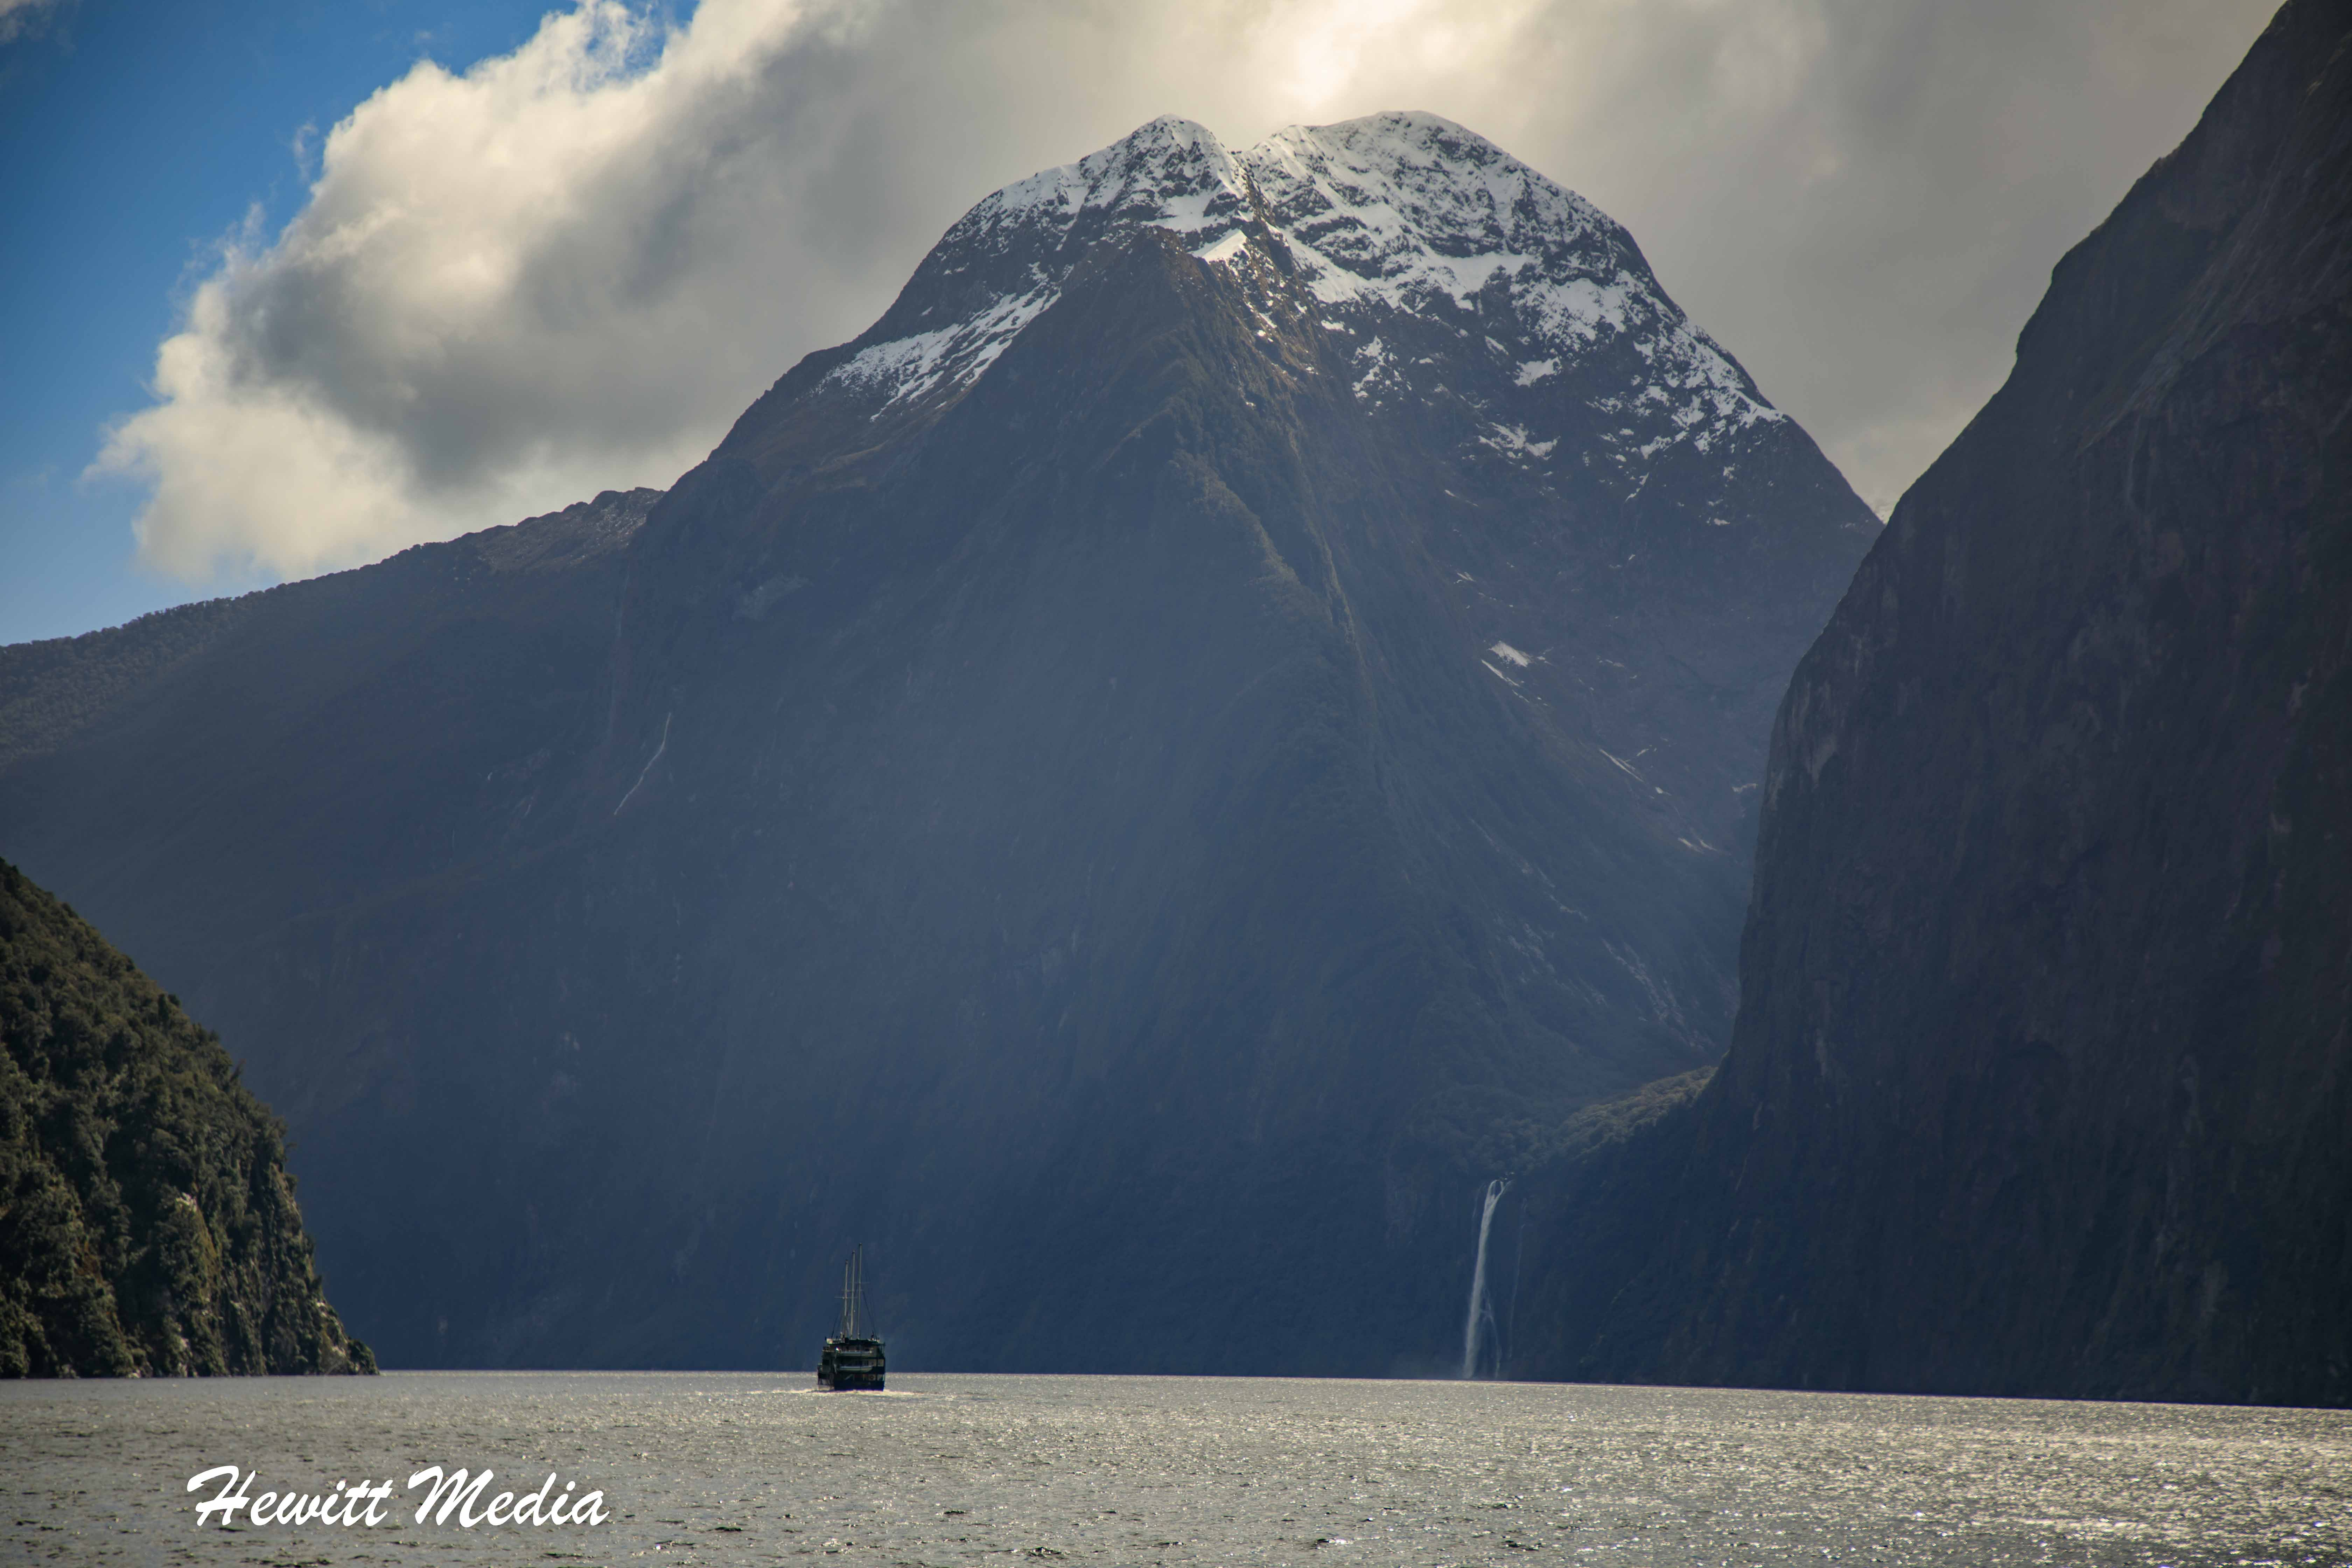 Boat in the Distance in Milford Sound